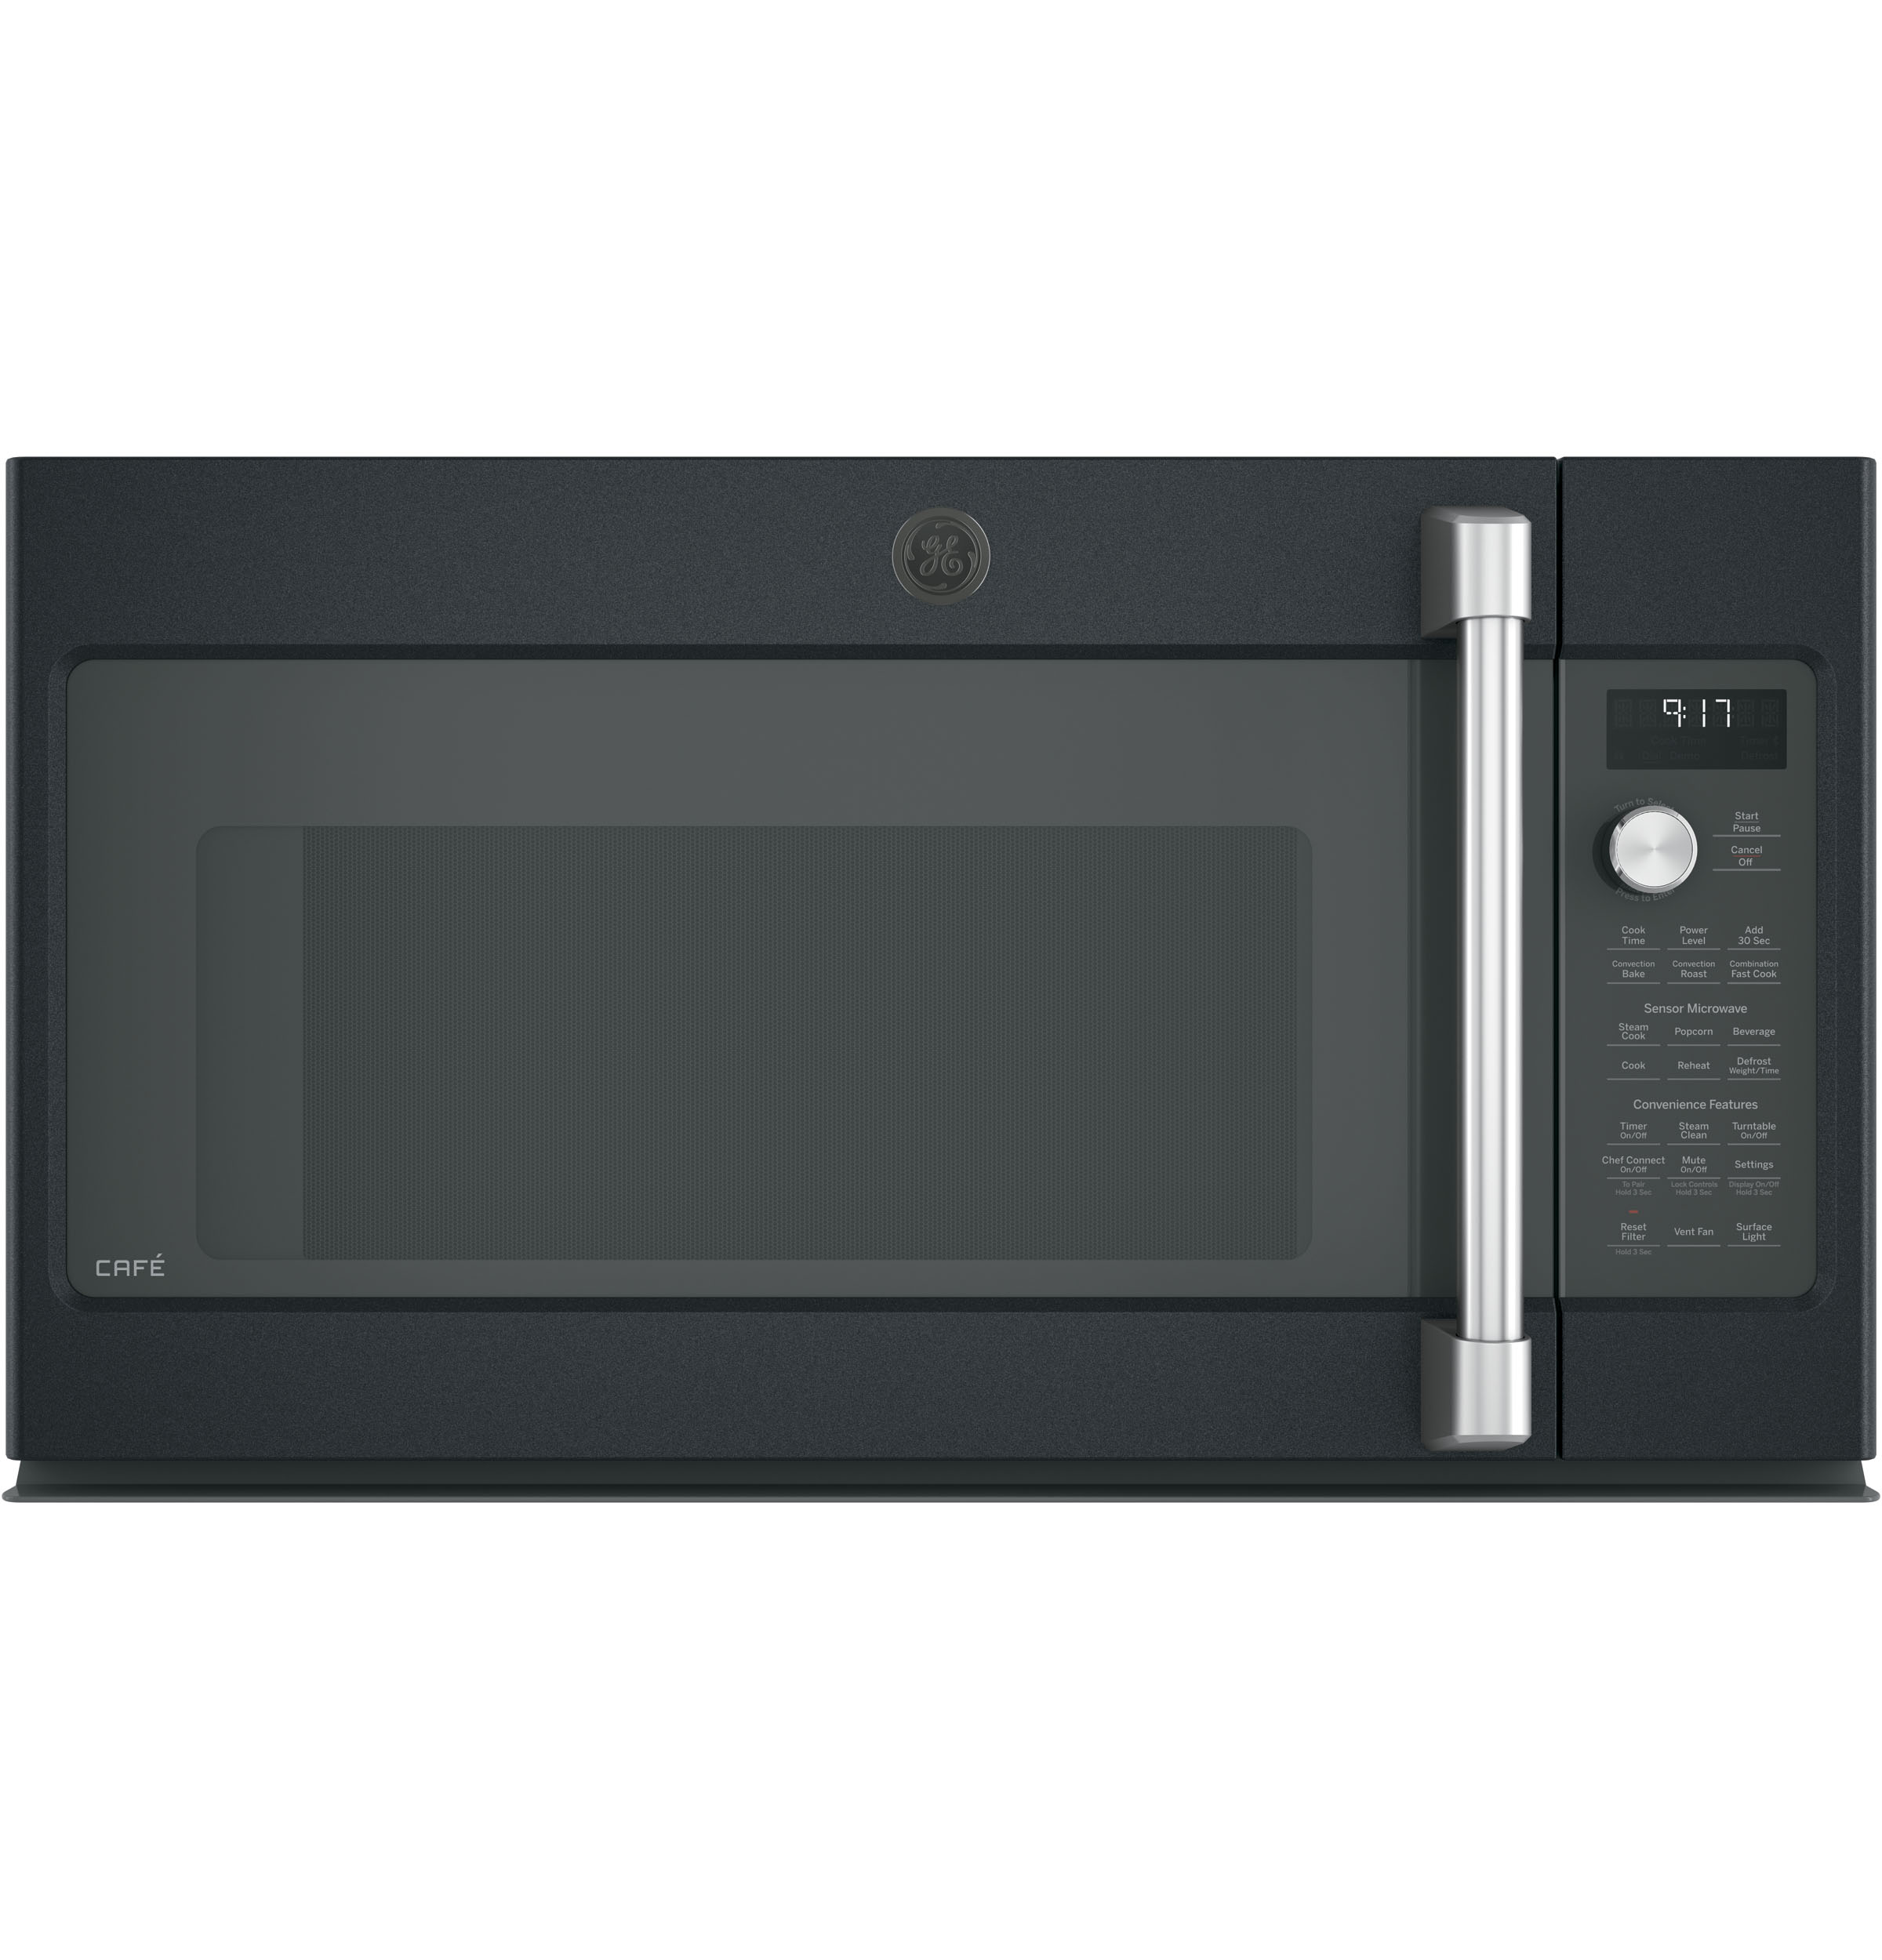 GE Cafe GE Café™ Series 1.7 Cu. Ft. Convection Over-the-Range Microwave Oven